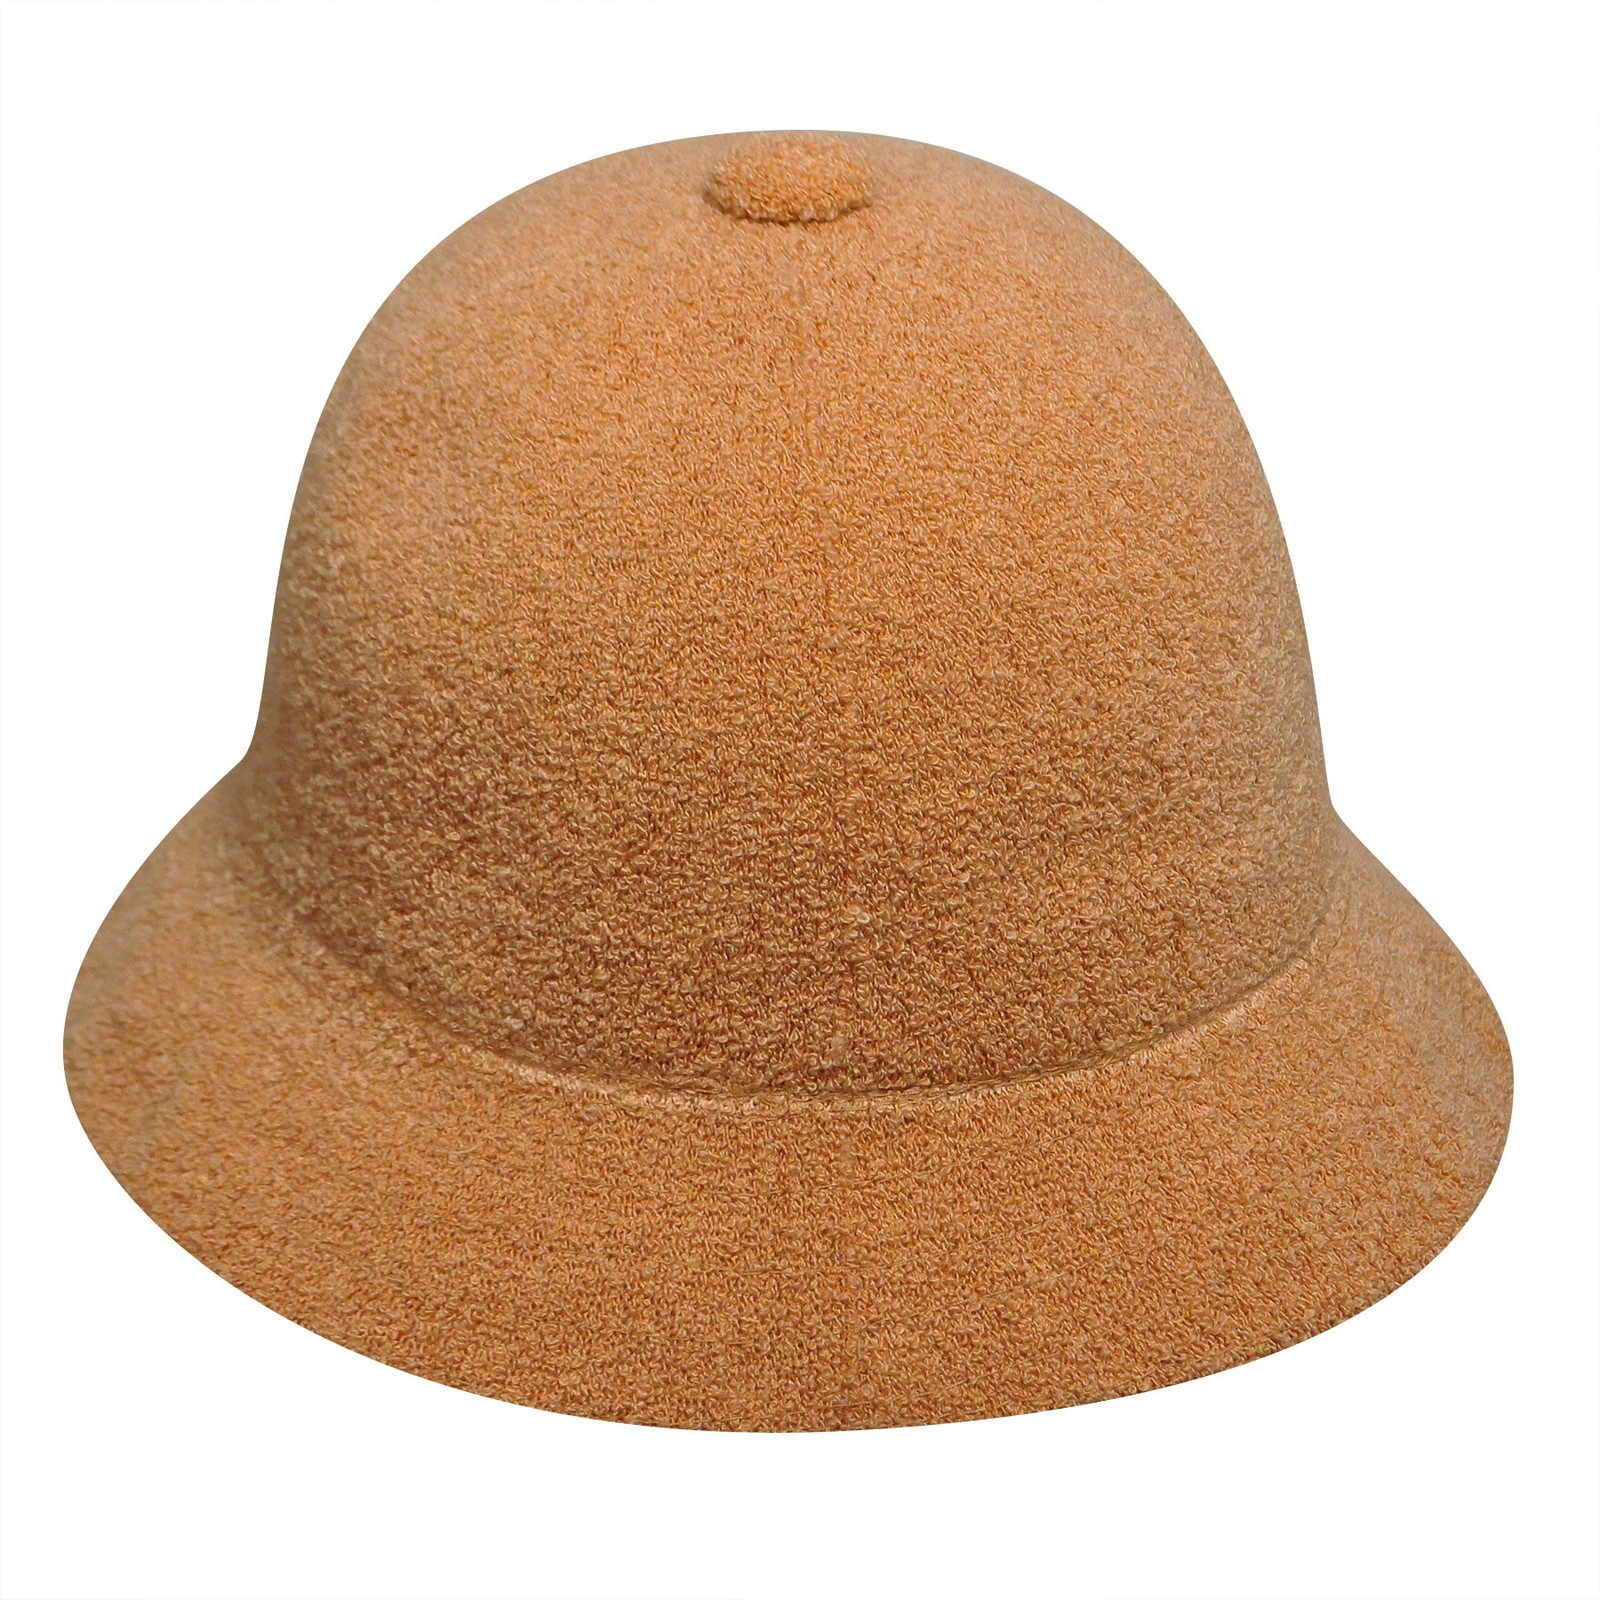 c1f349acf7607 h m s Remaining. KANGOL Bermuda Casual Bucket Hat Terry Towelling 0397BC ...